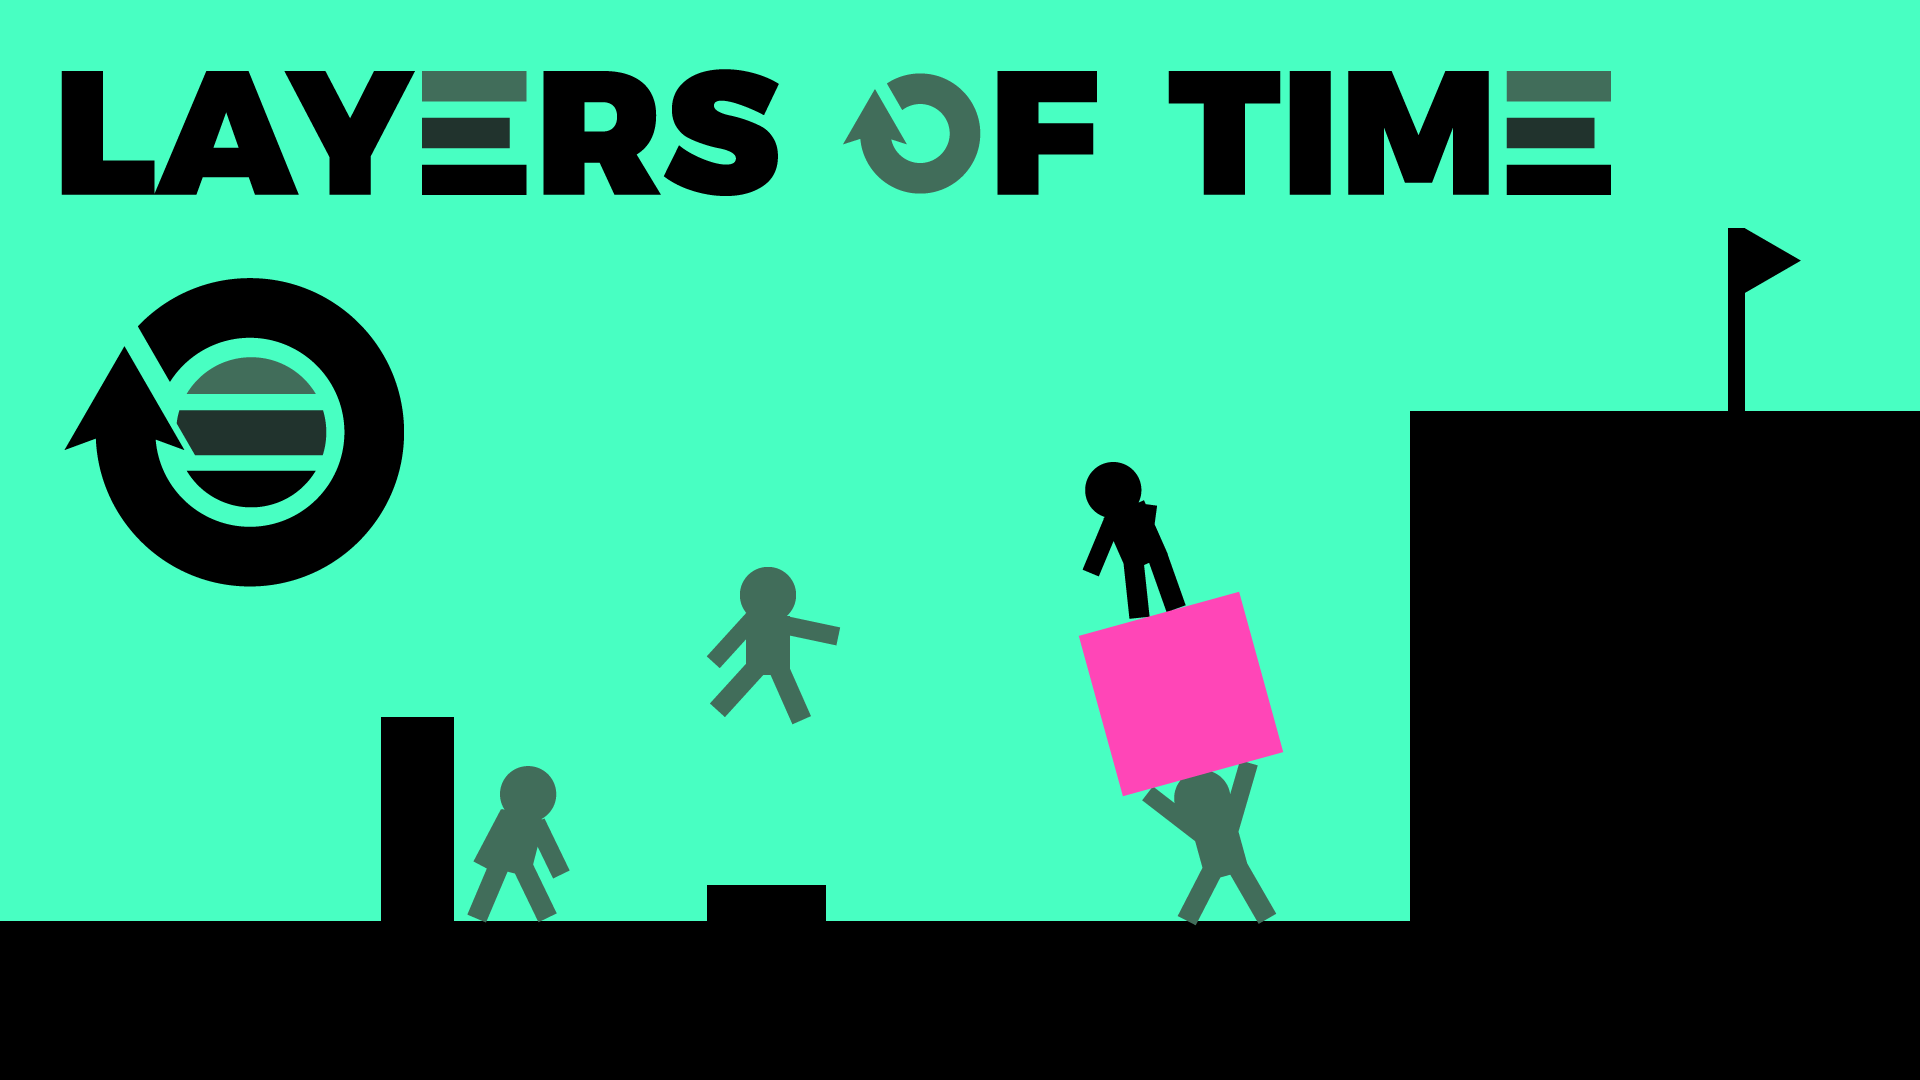 Layers of time